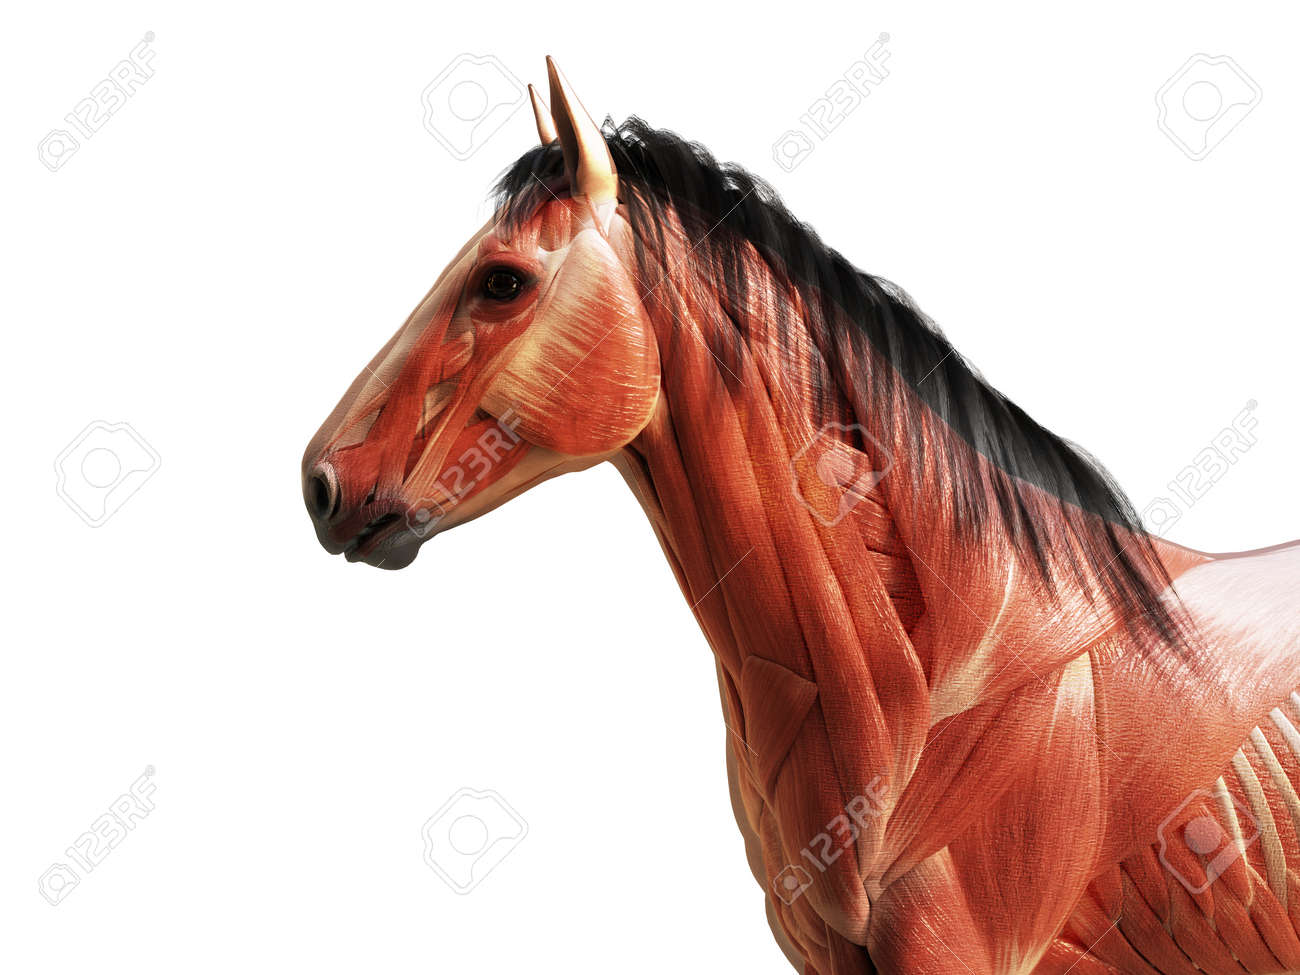 3d Rendered Medically Accurate Illustration Of The Horse Anatomy Stock Photo Picture And Royalty Free Image Image 123813285